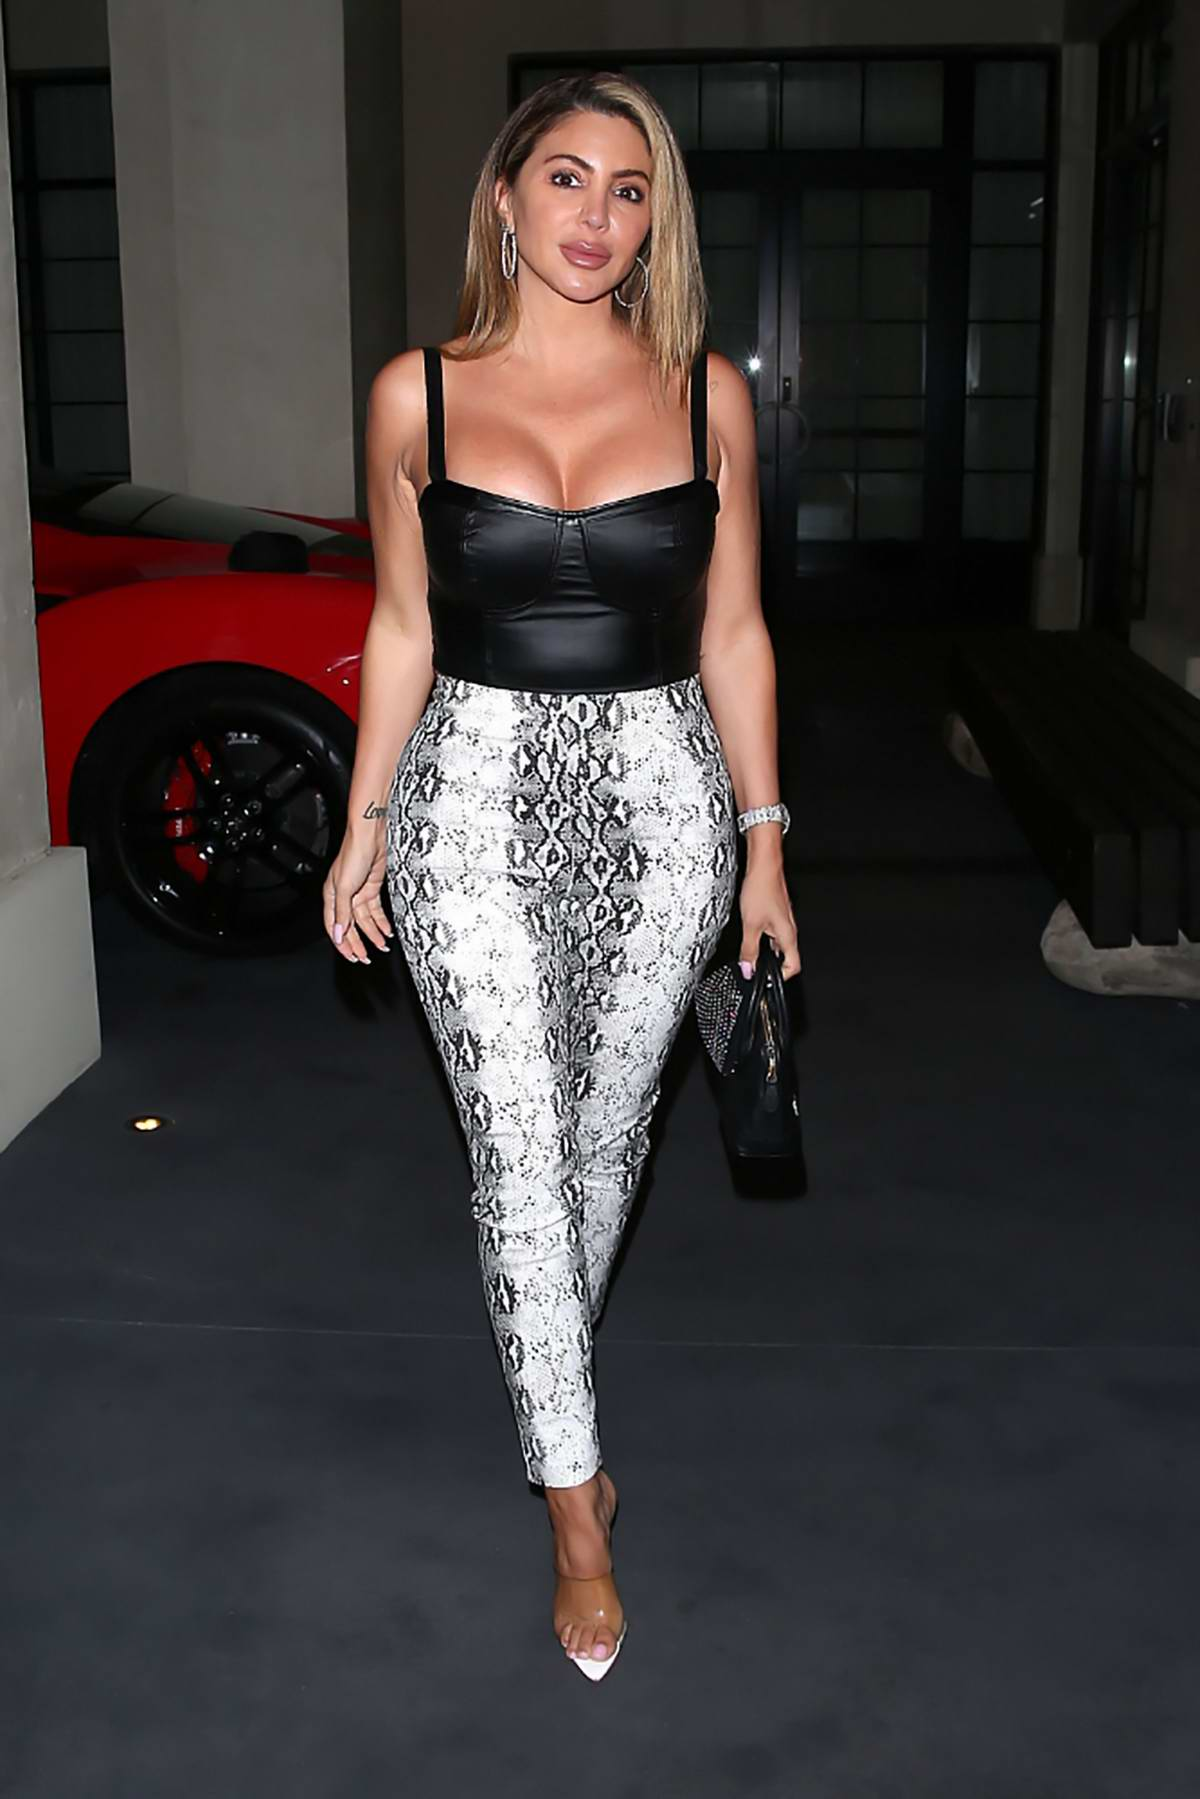 Larsa Pippen dons black leather top and snakeskin print pants as she leaves 'Olivetti' Restaurant in West Hollywood, California